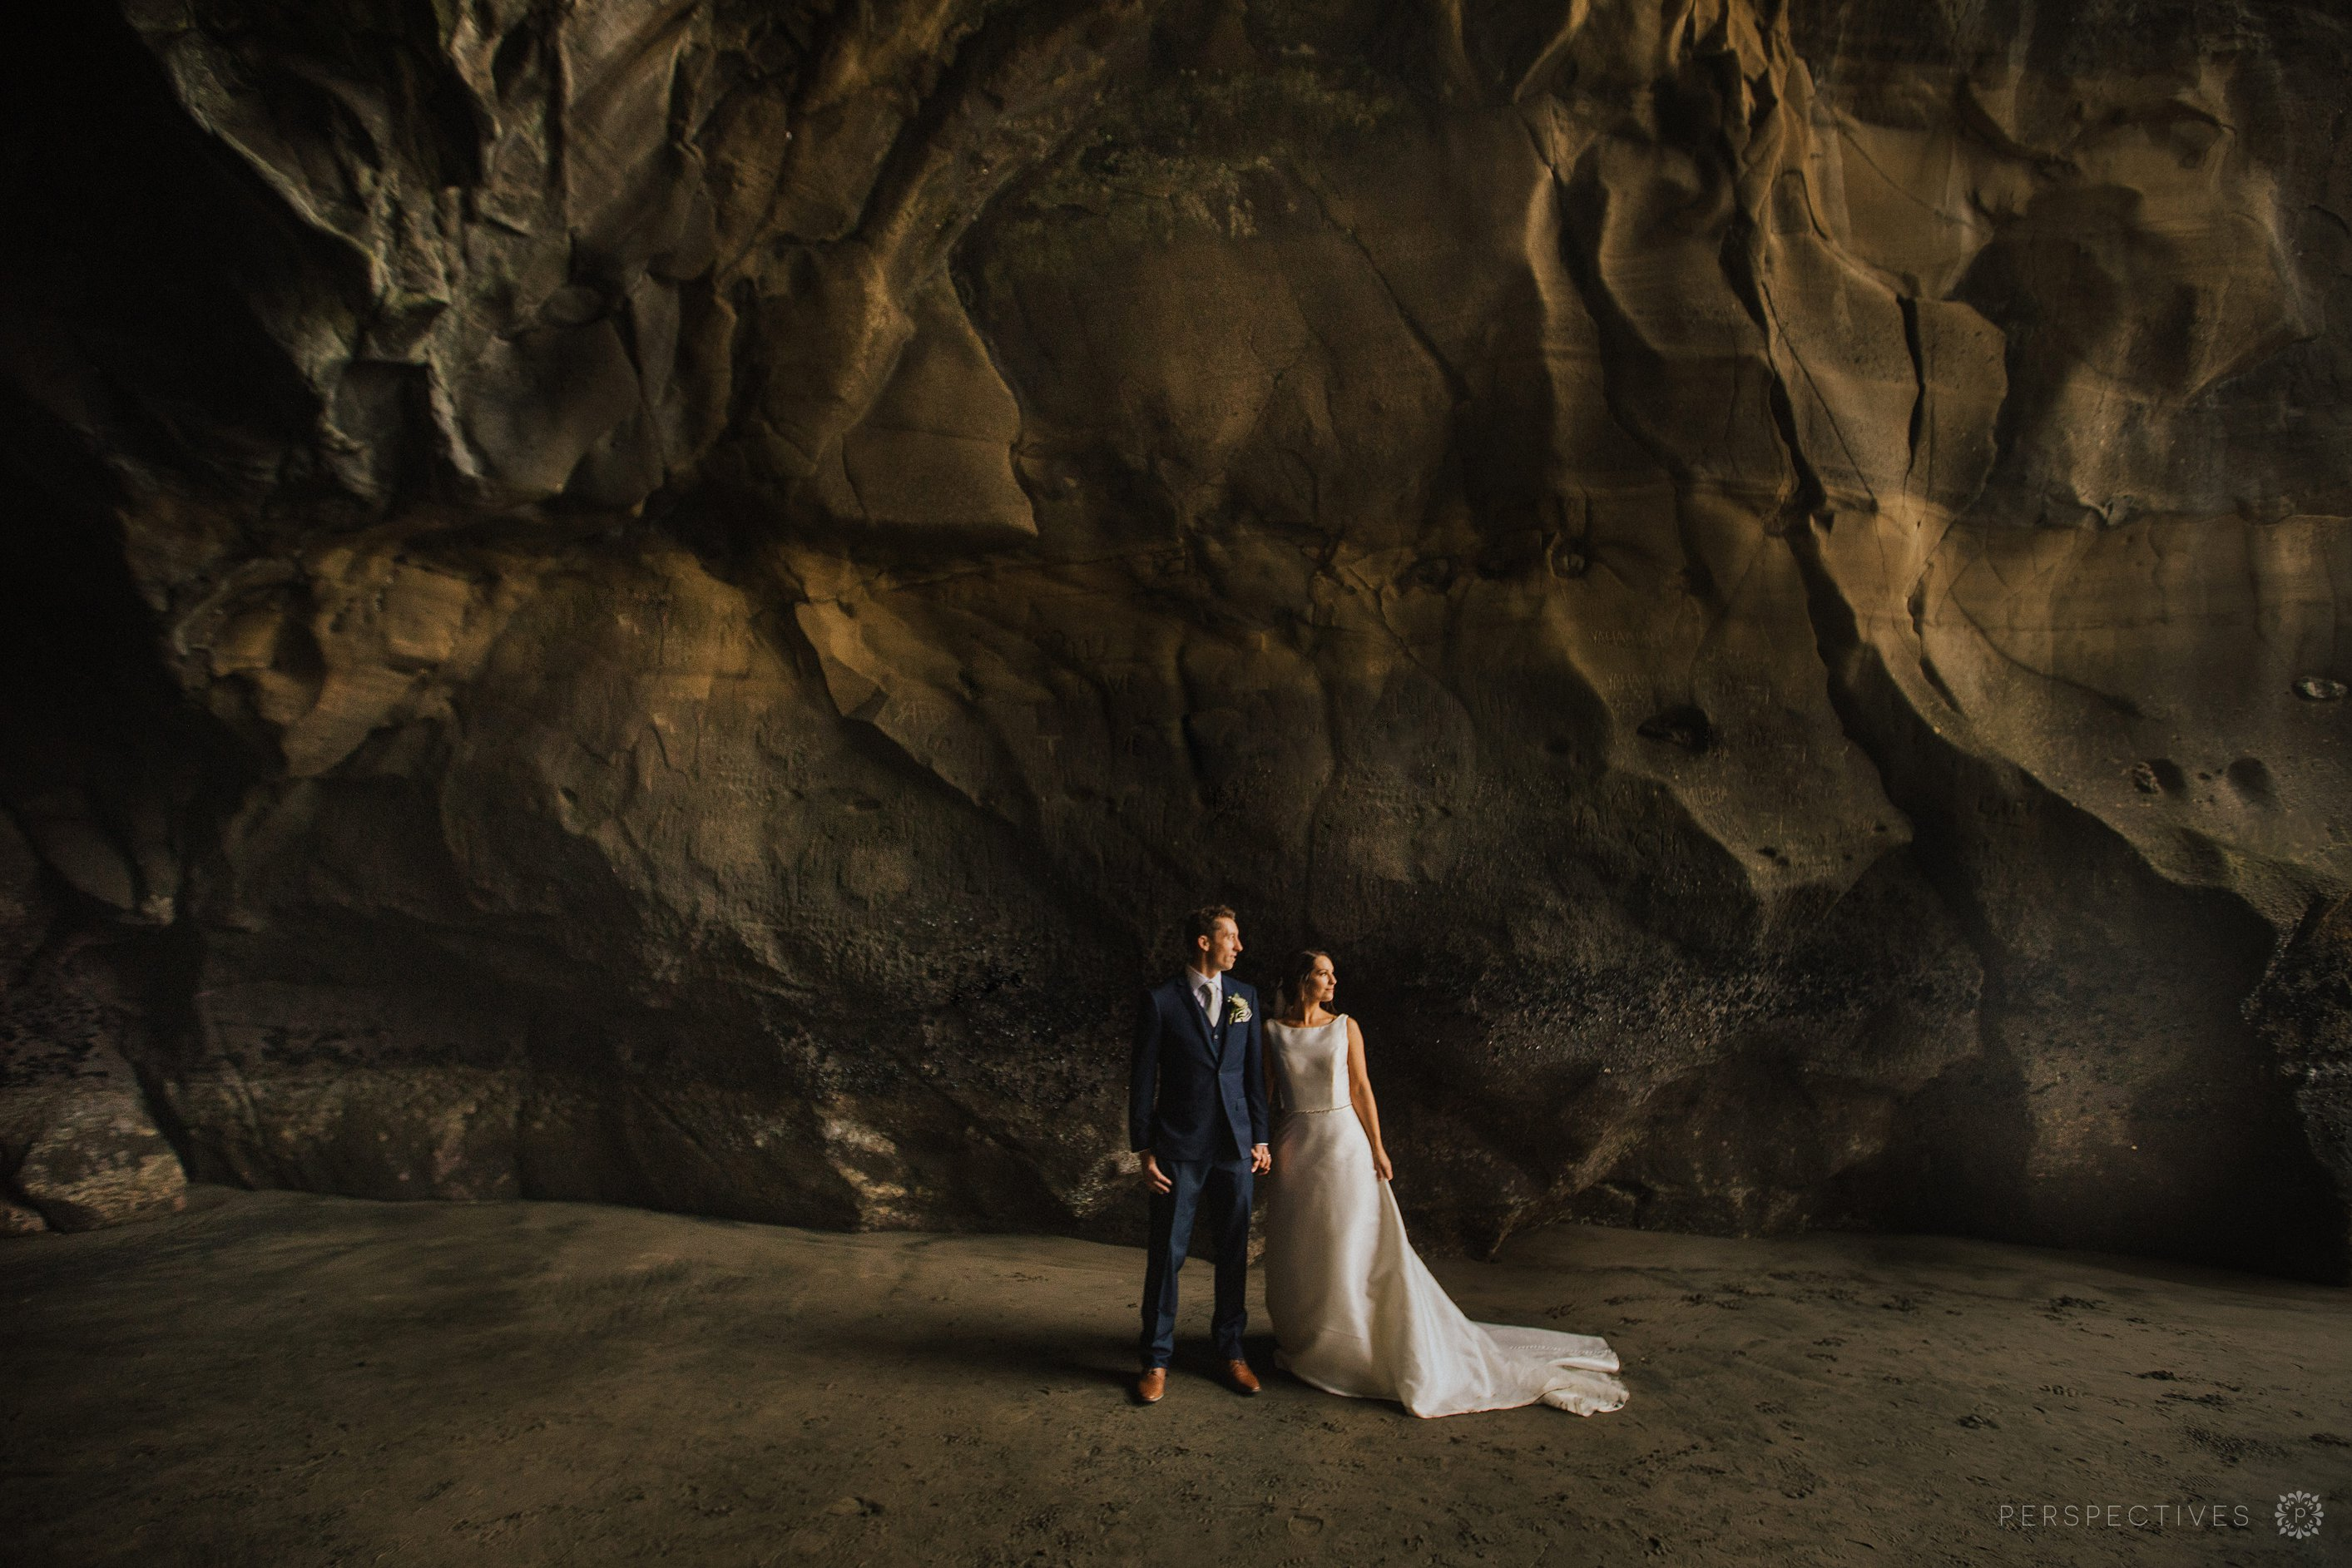 Muriwai beach Auckland beach wedding photo location